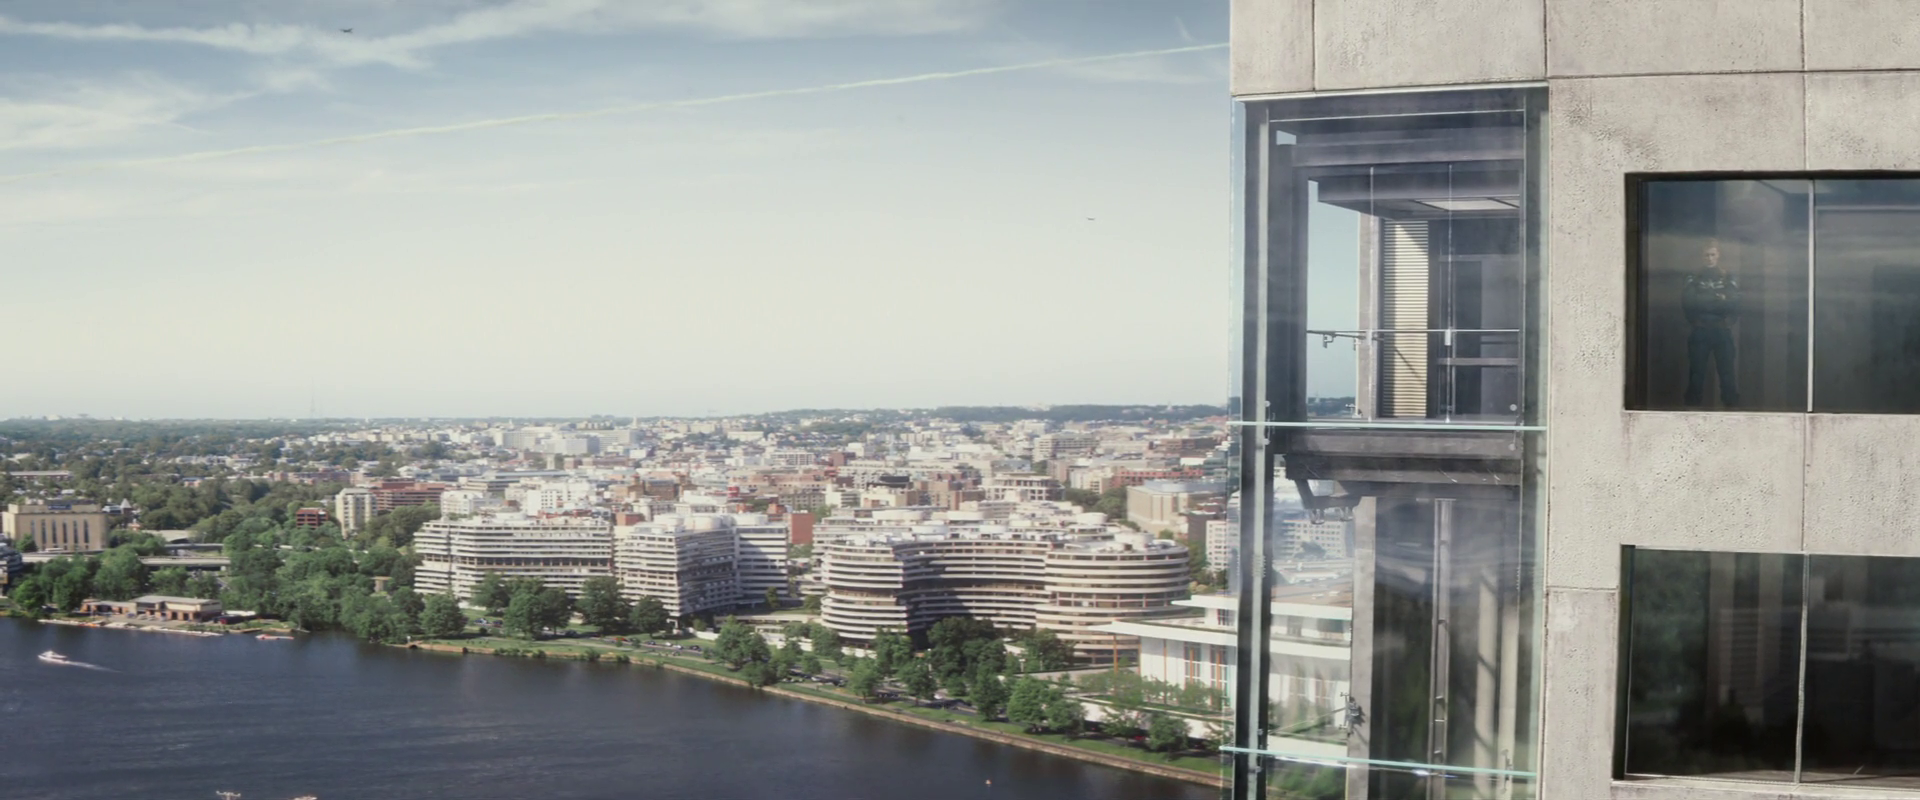 Captain America: Winter Soldier  (2014), view east to Watergate Hotel complex.